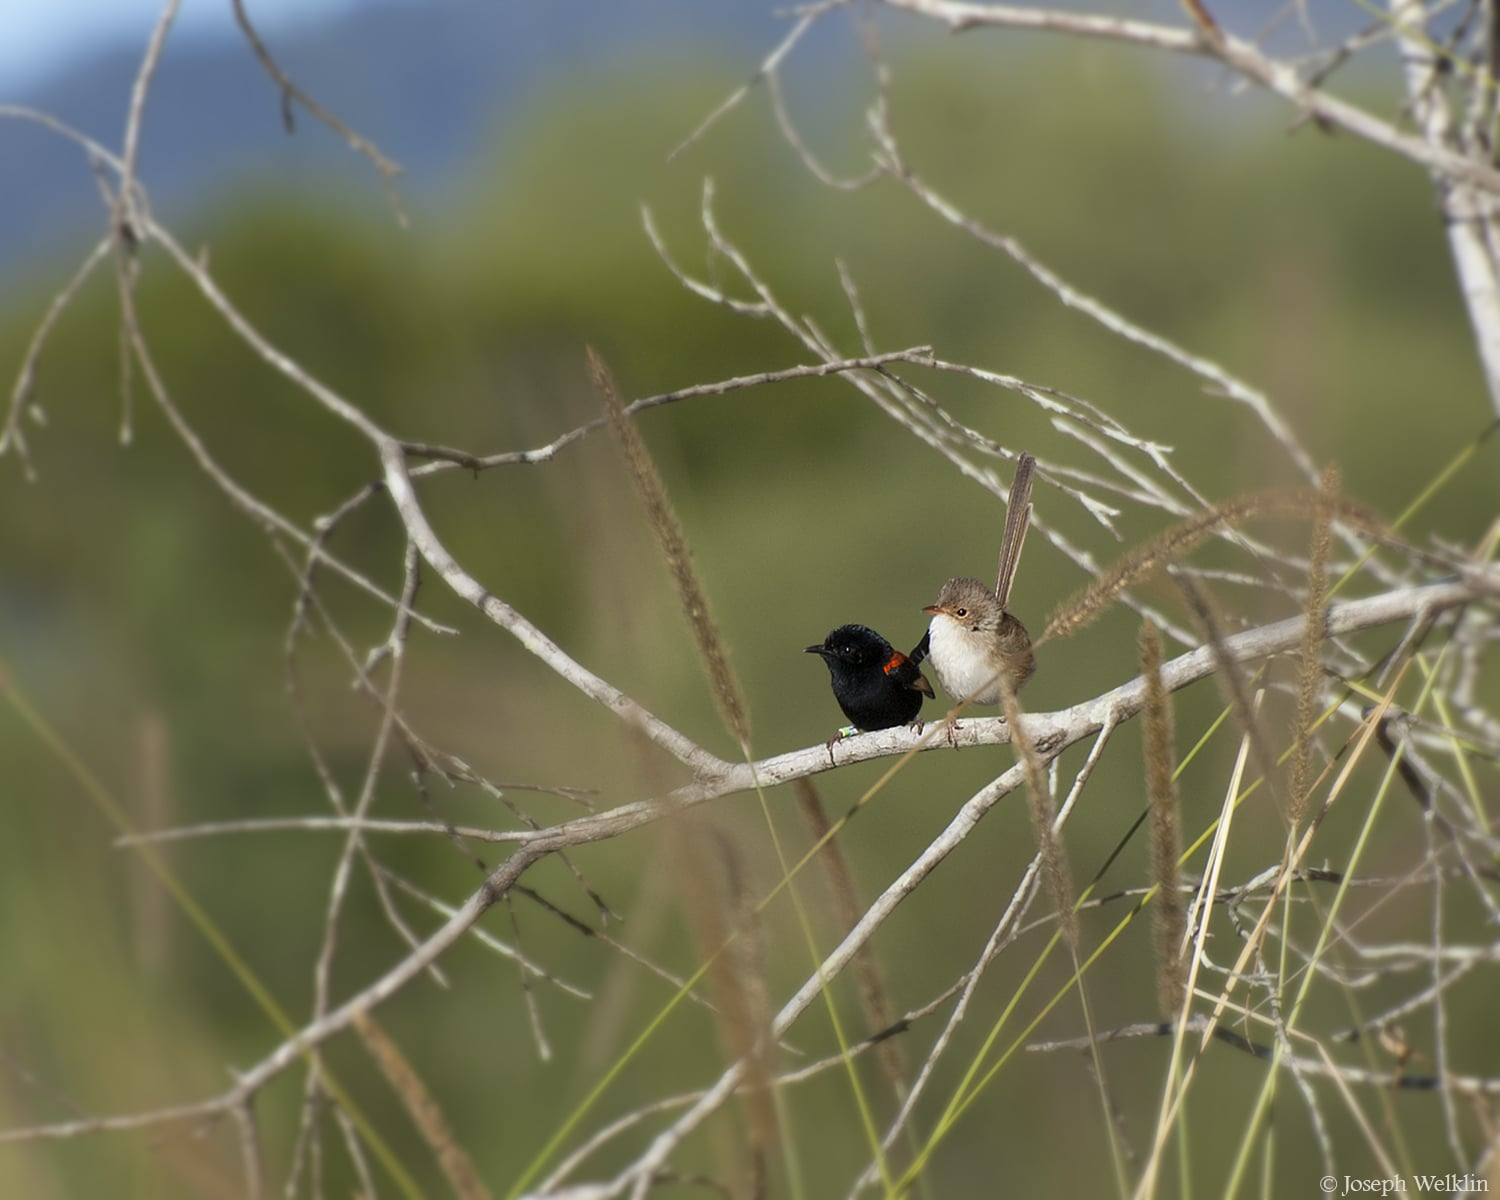 A pair of Red-backed Fairy-wrens. Photographed in Queensland, Australia.